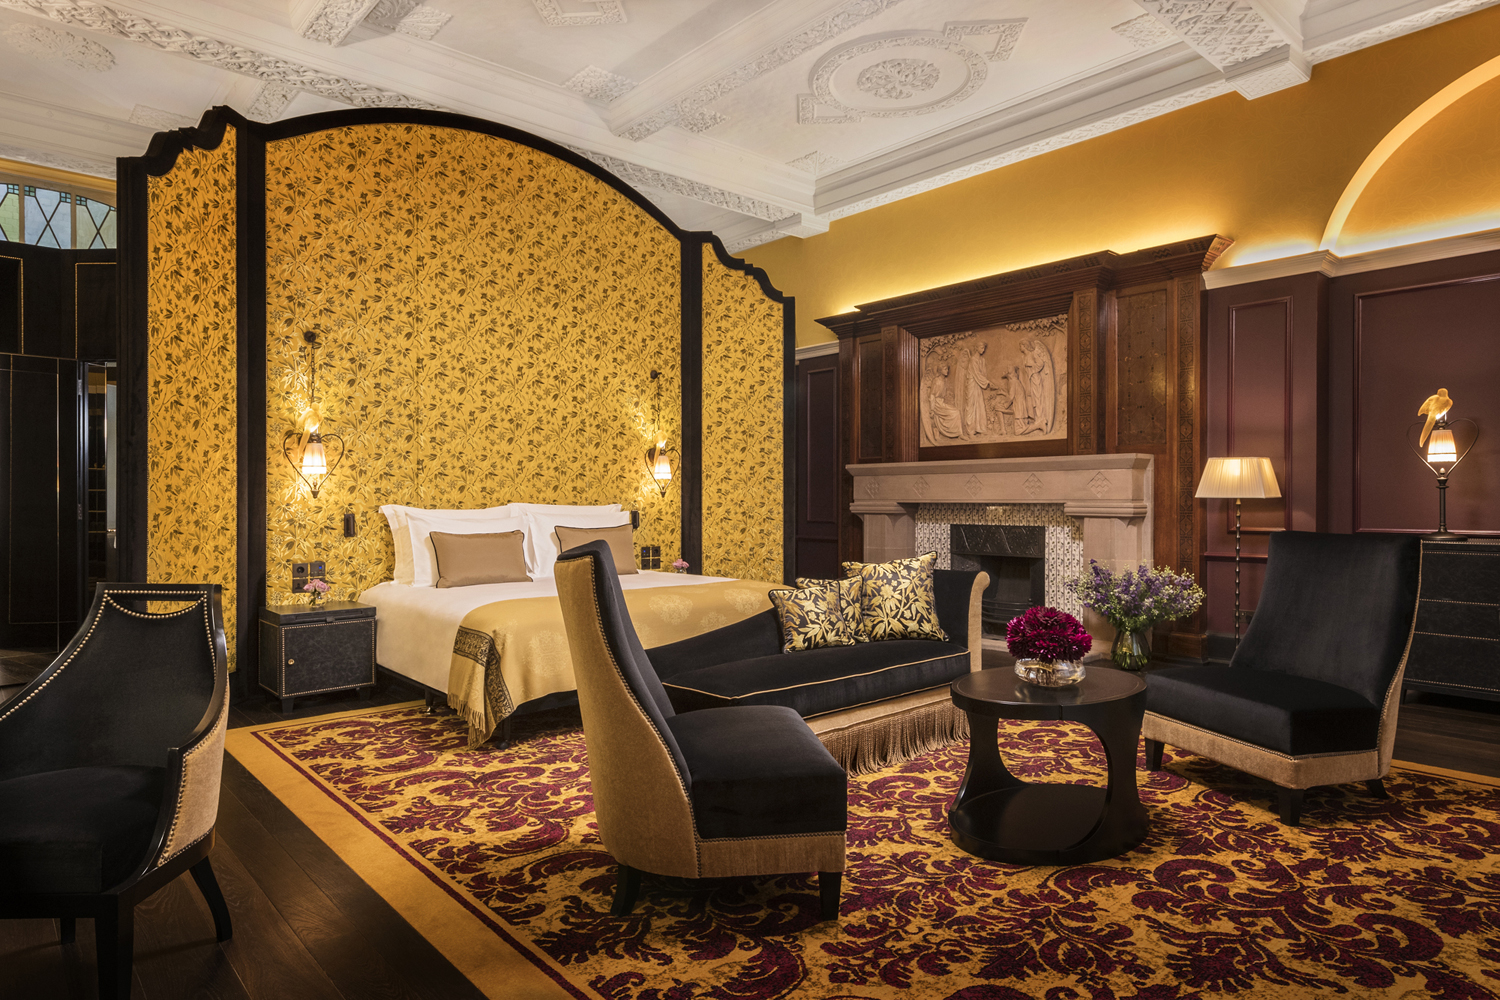 L Oscar hotels london west end bloomsbury venue hire events luxury cool interiors bedroom